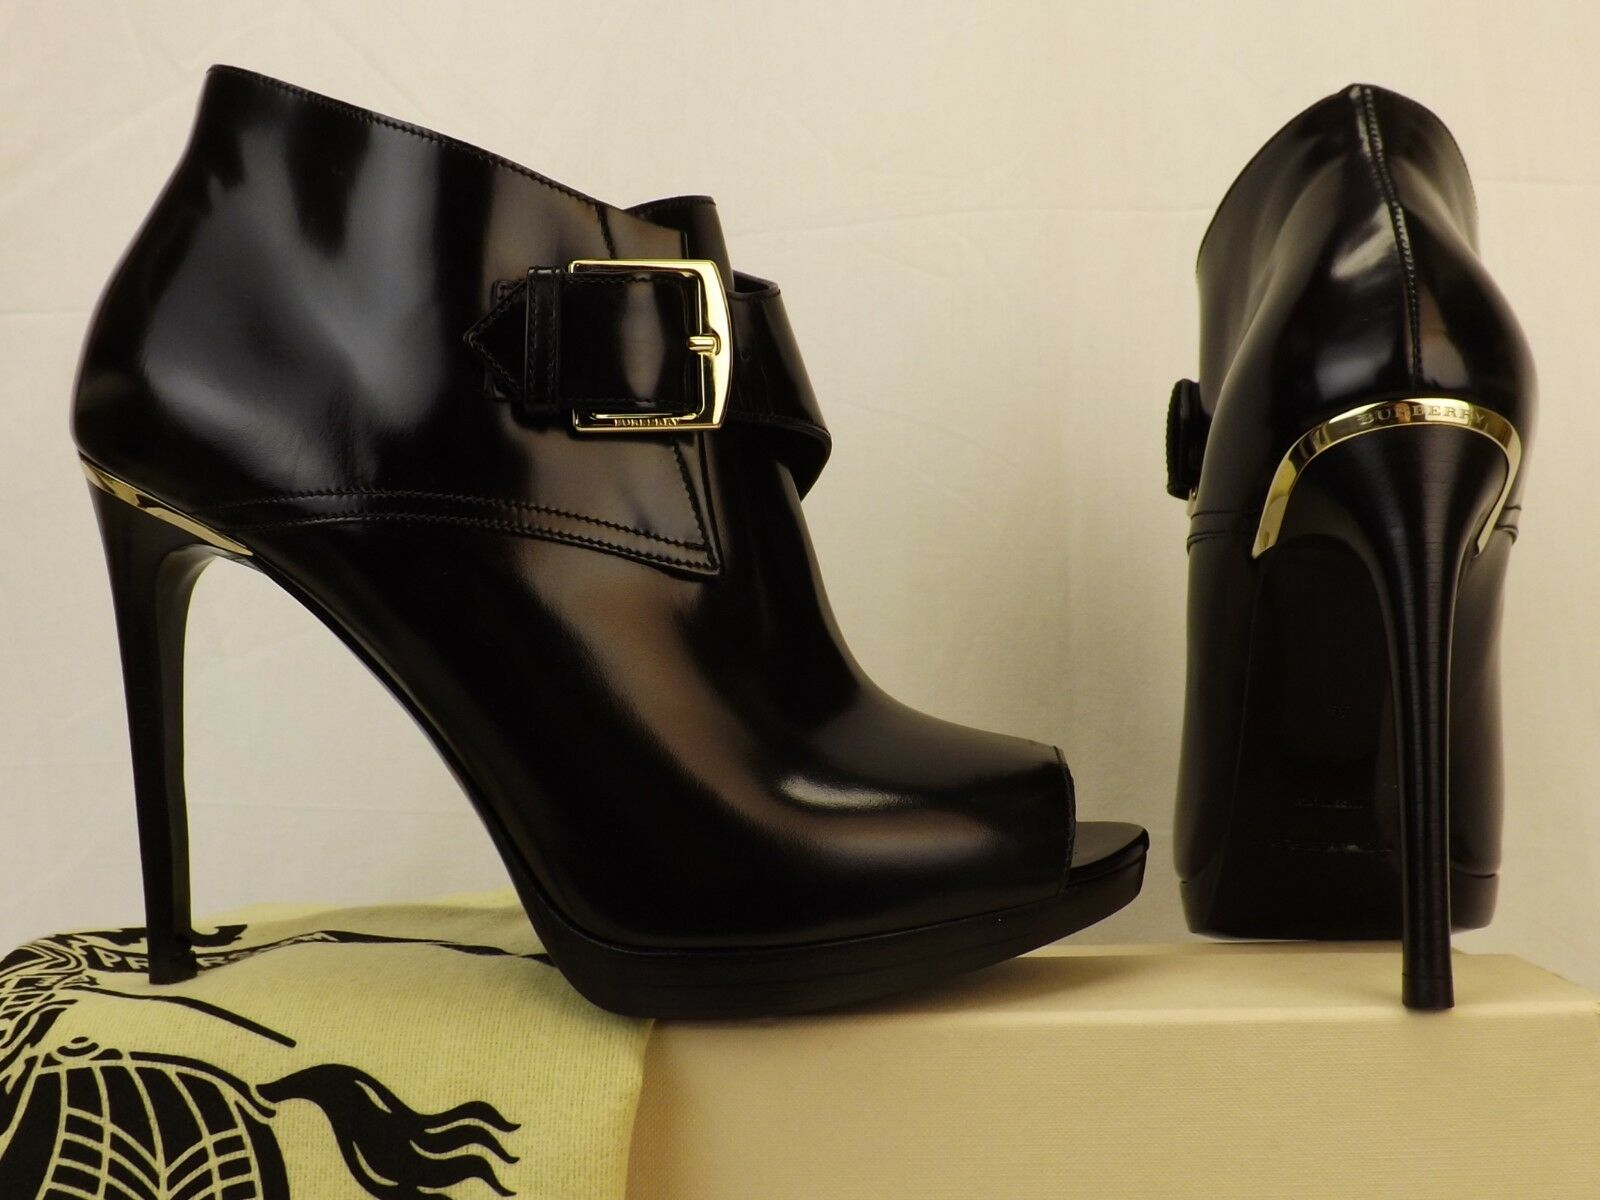 BURBERRY HOLTSMERE BLACK LEATHER BELTED BUCKLE PEEP TOE ANKLE BOOTS 37.5  995